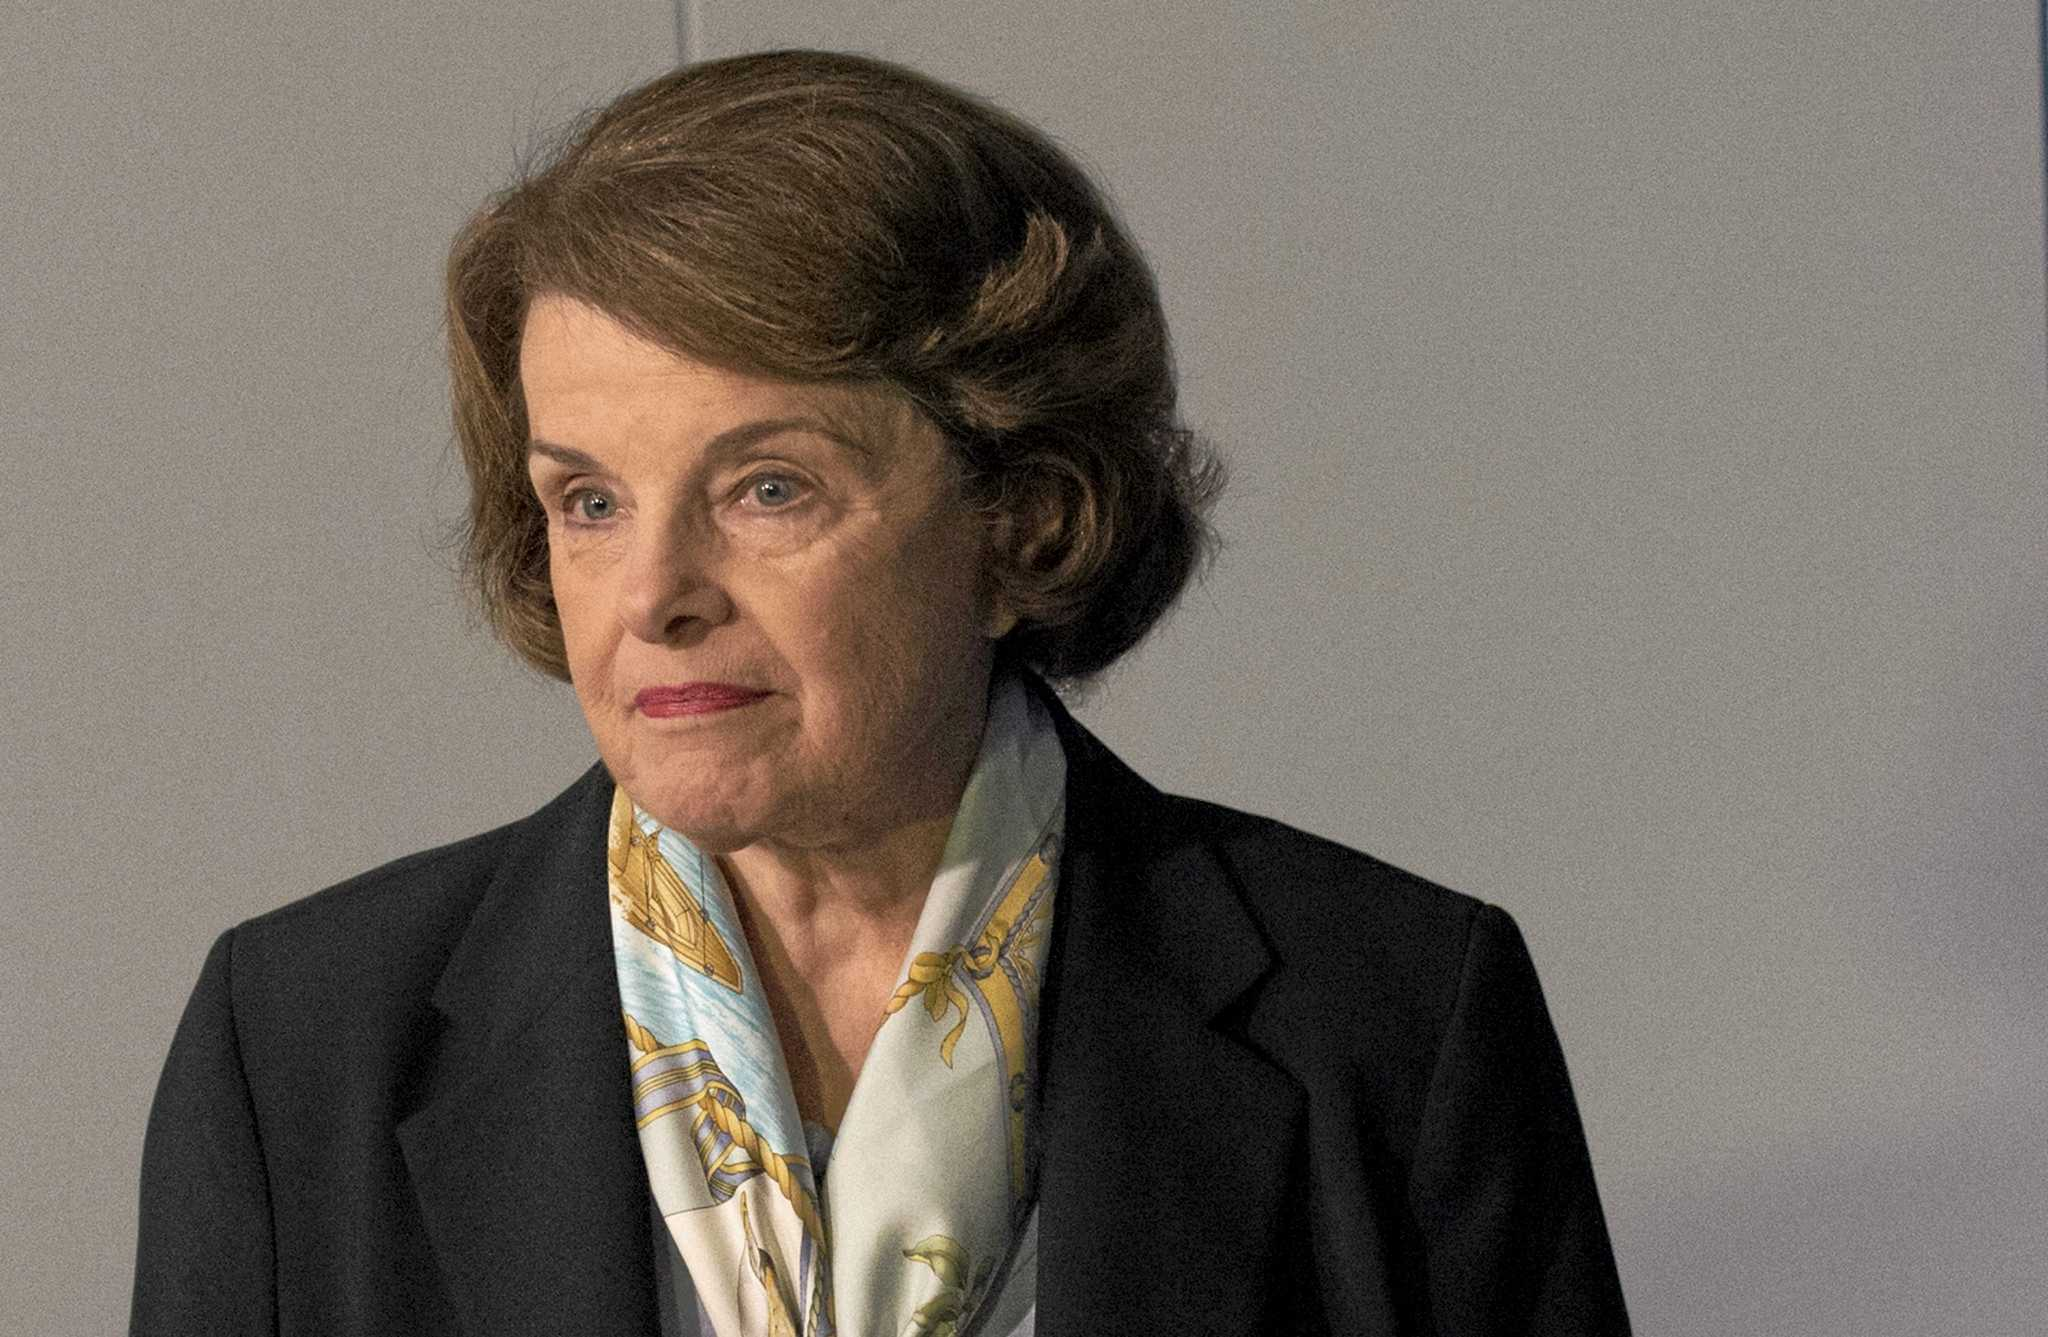 President Trump slammed sneaky Dianne Feinstein Wednesday after the Democratic senator released the transcript of a congressional interview with the